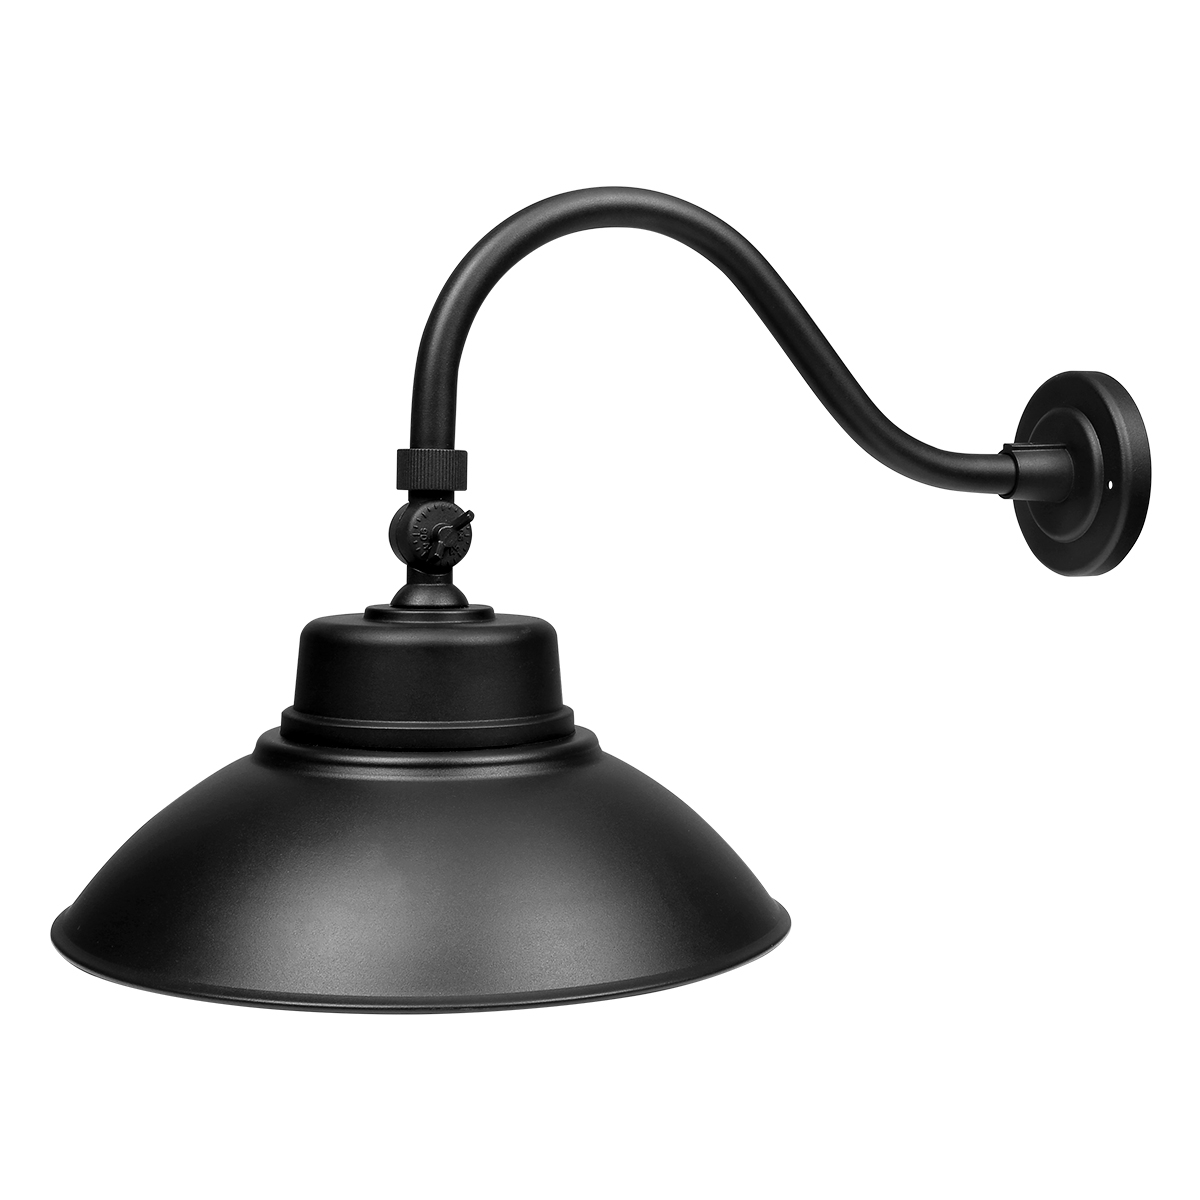 Gooseneck Lighting Lighting Ever Top Quality Led Fixtures